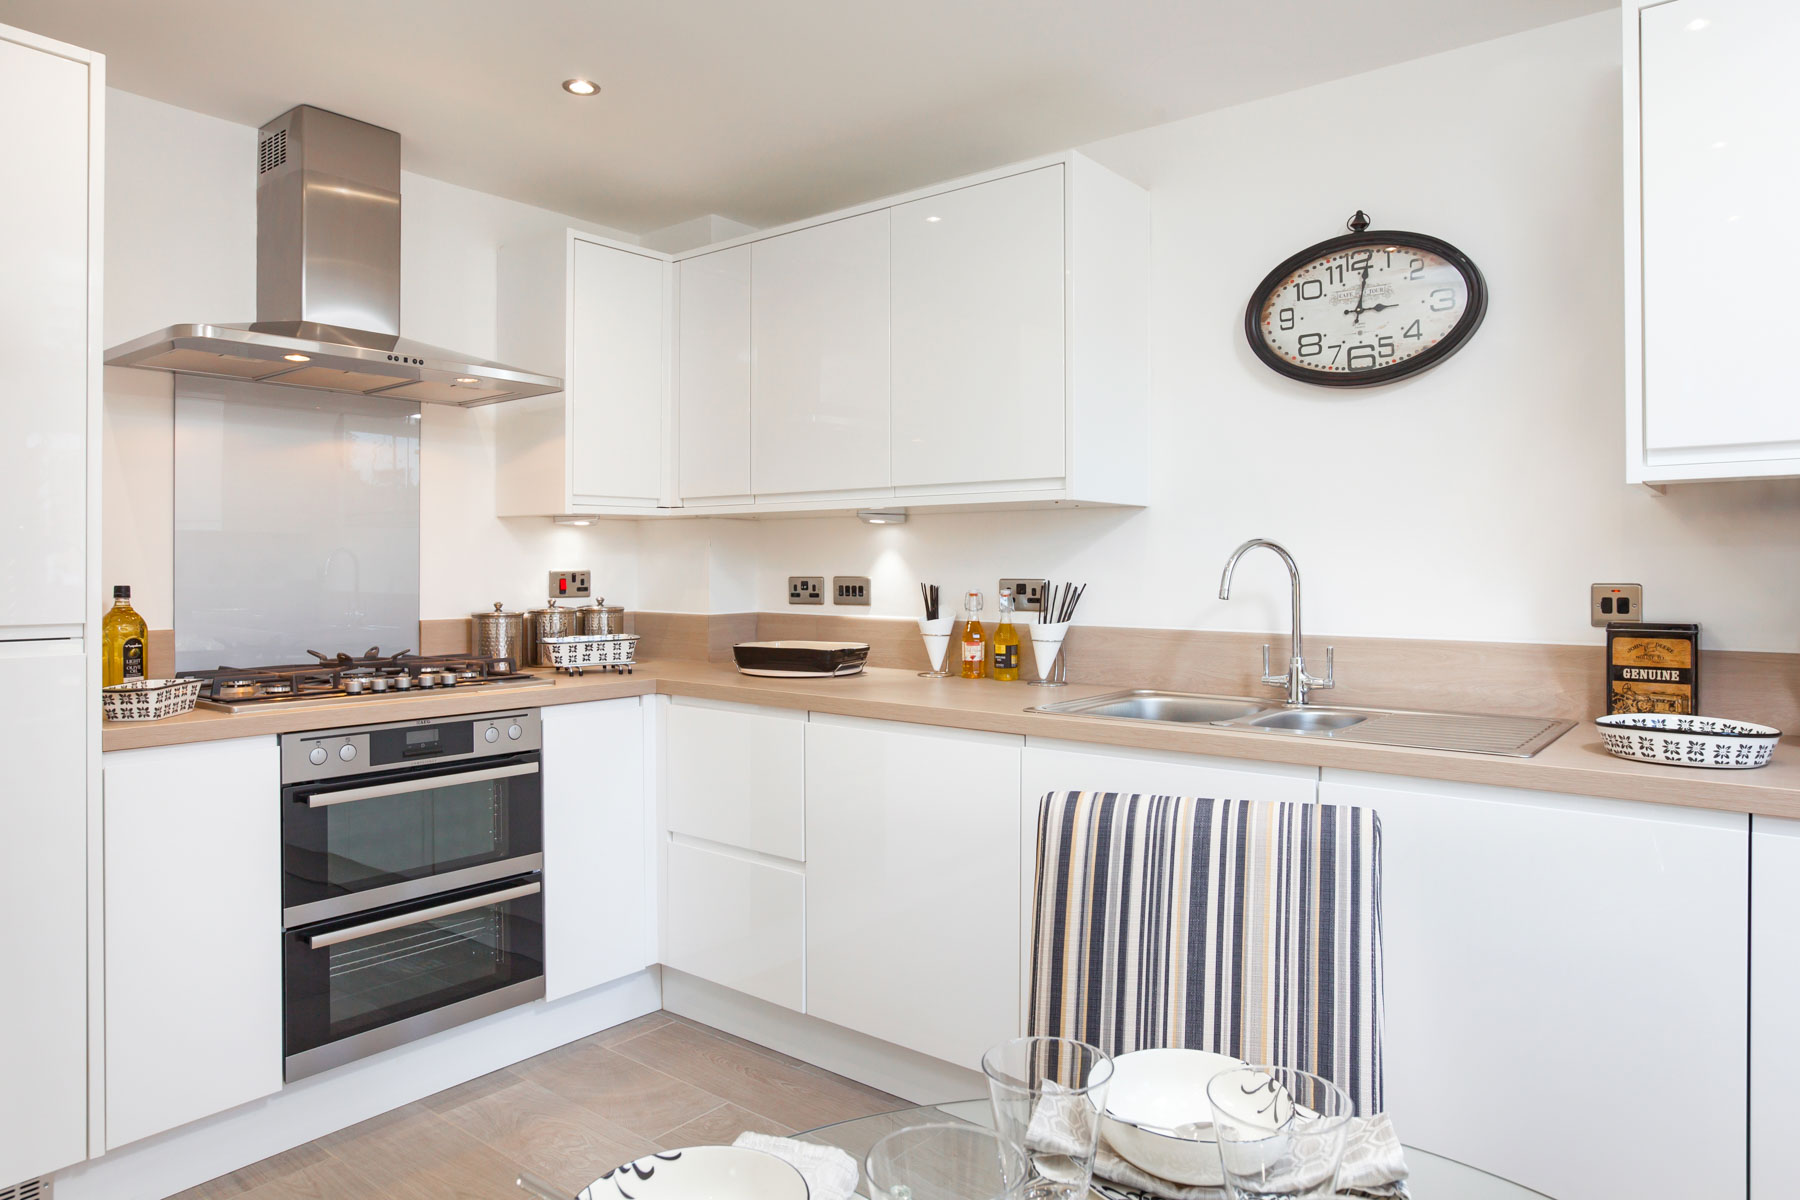 TW Exeter - Rackenford Meadow - Ashton example kitchen